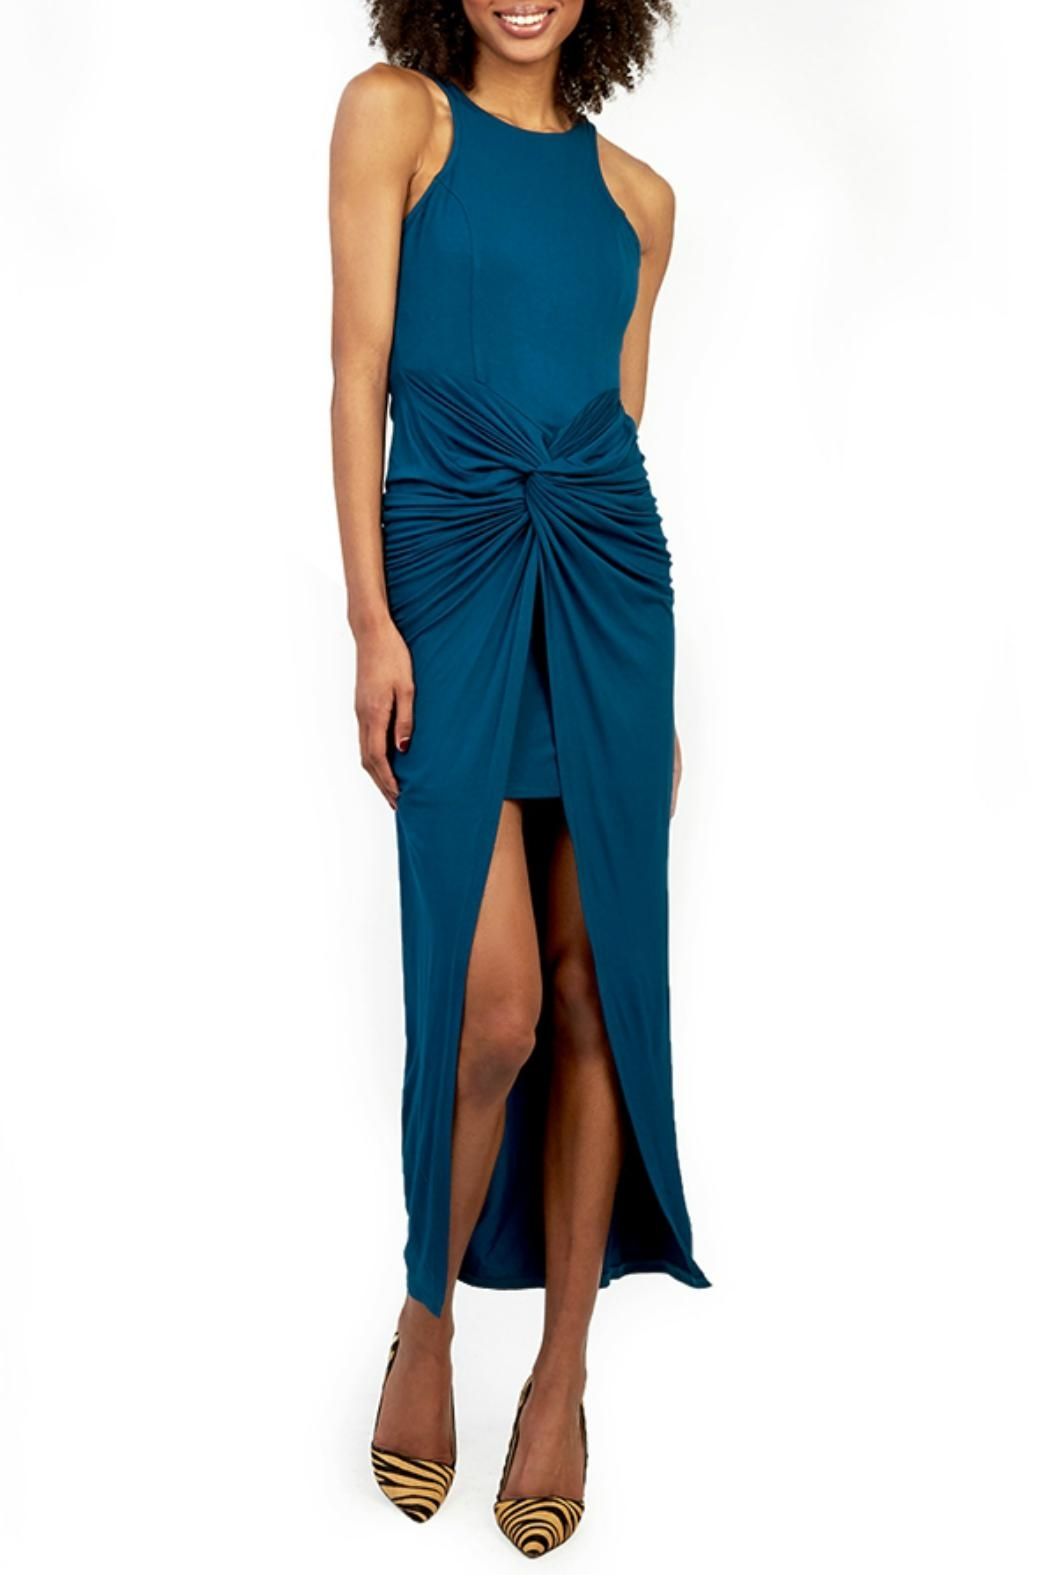 Gracia Blue Twist Dress - Main Image